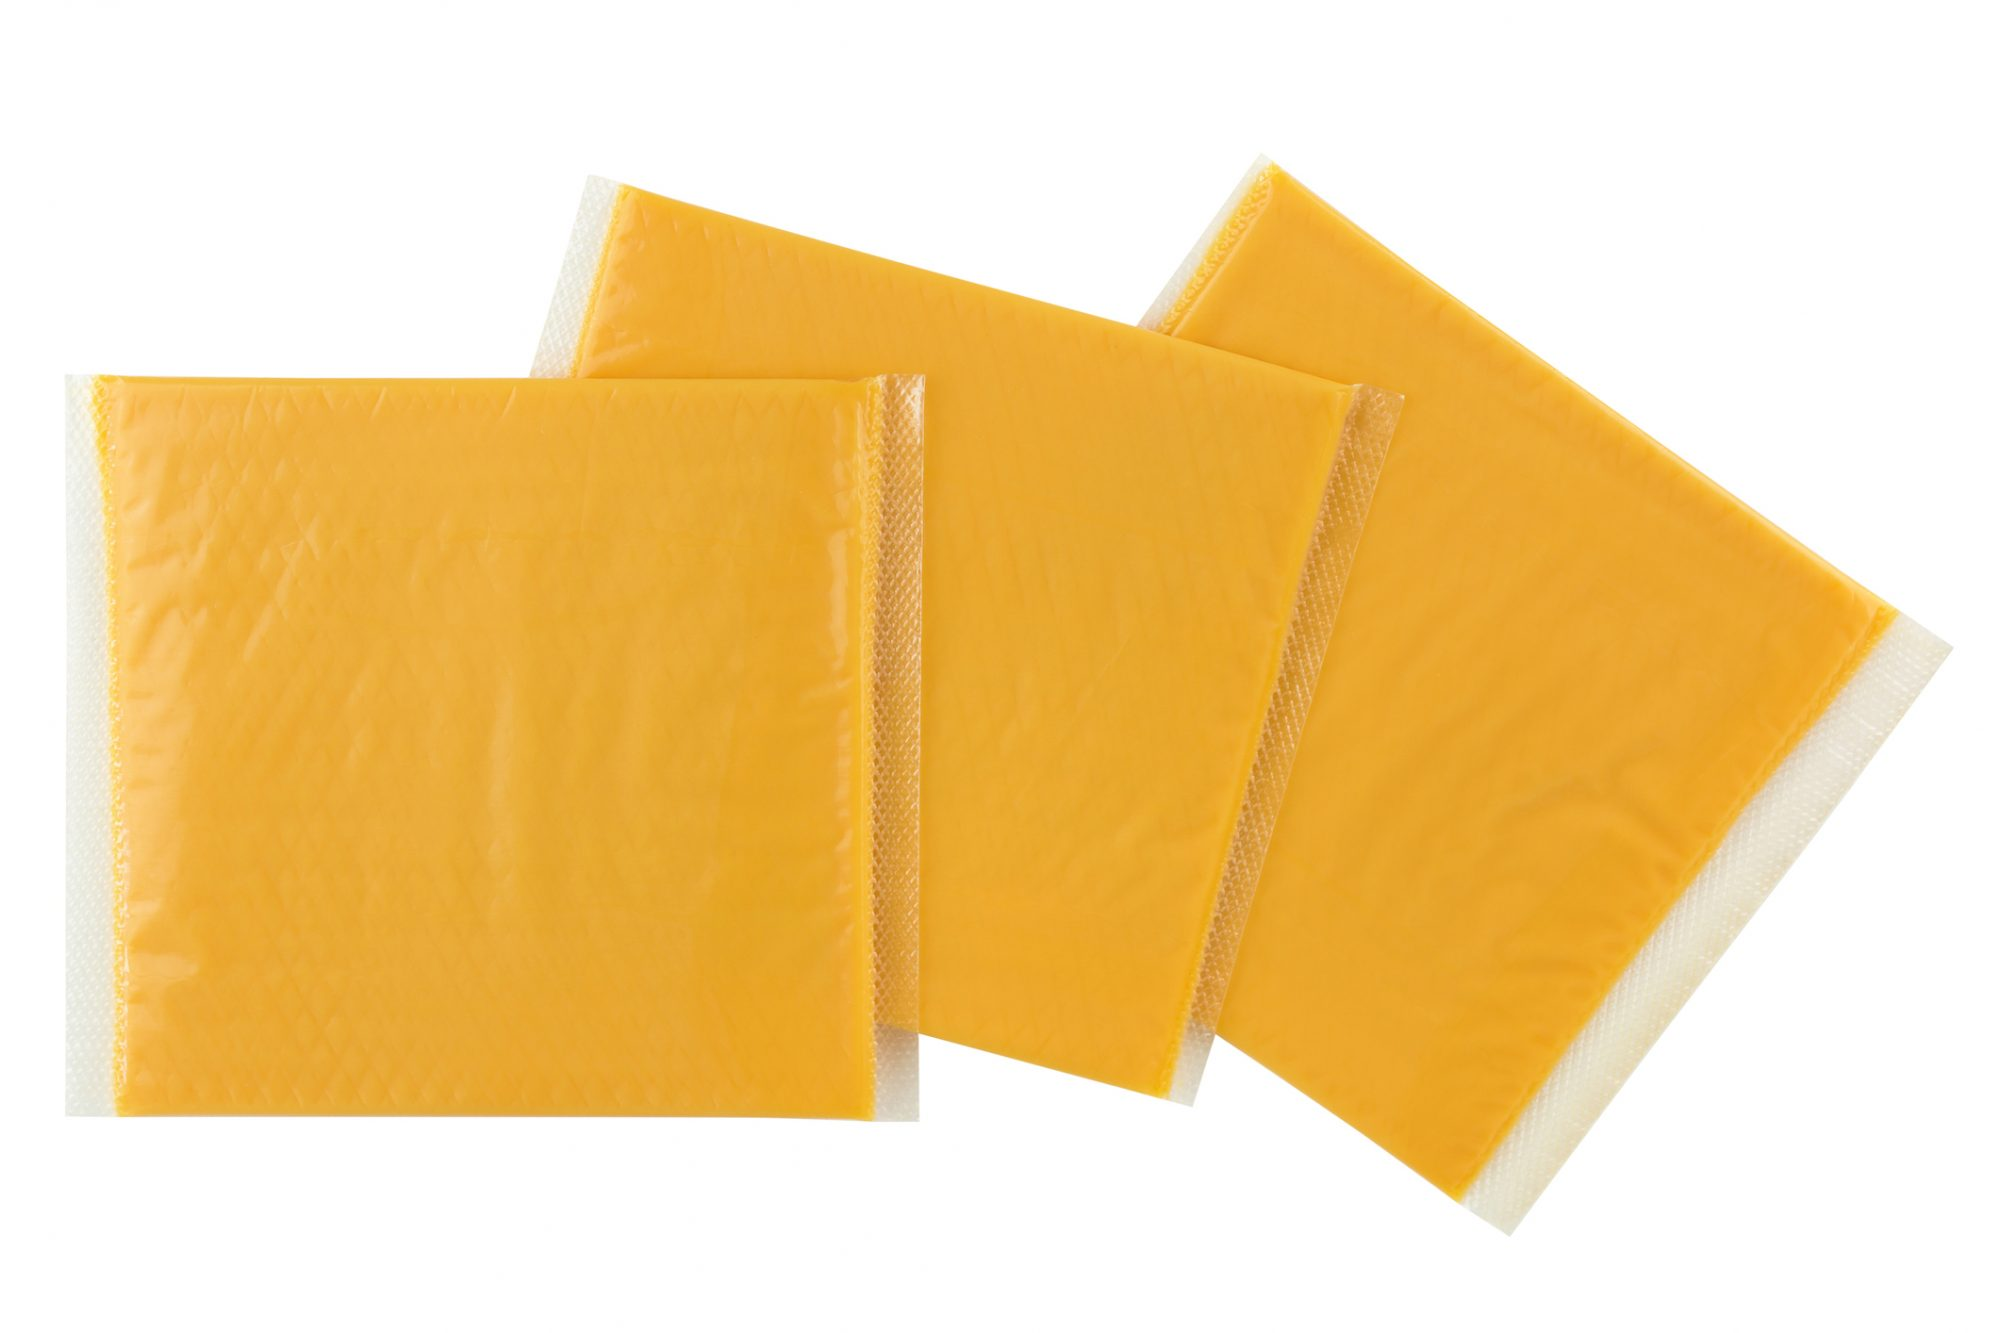 Millennials Are Always Killing Things. This Time It's American Cheese.